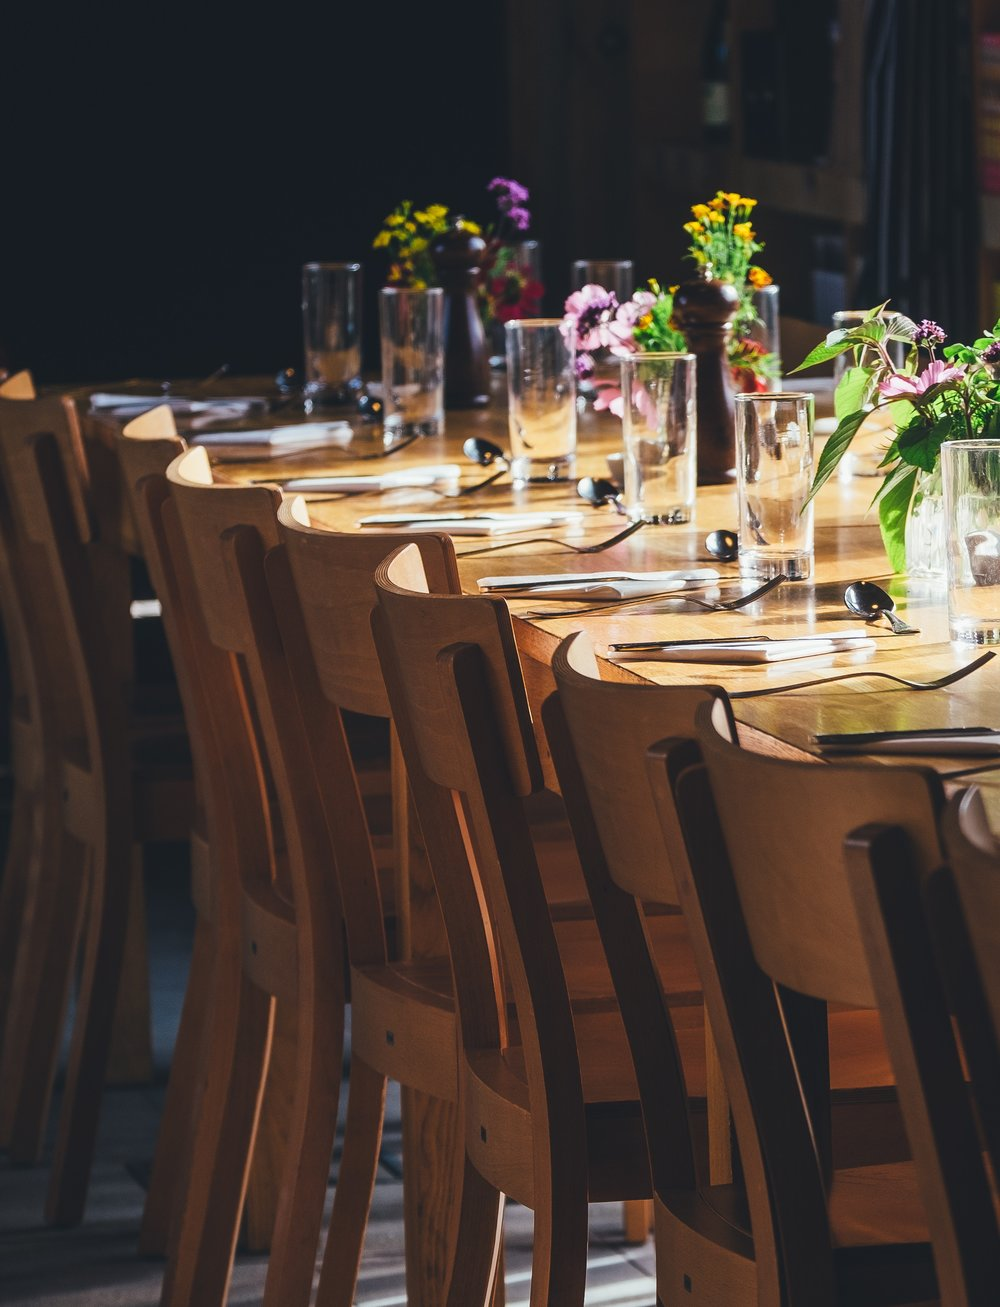 Rehearsal Dinner - Coming Summer 2019- Rooftop Terrace Rehearsal Dinner at SOLO Lofts 5 stories above Solon with trellis and fire pit.Salt Fork Kitchen Jay or Eric 319.624.2081 FacebookMount Vernon Creates Denise Murphy 319.895.2682 www.mountvernoncreates.com